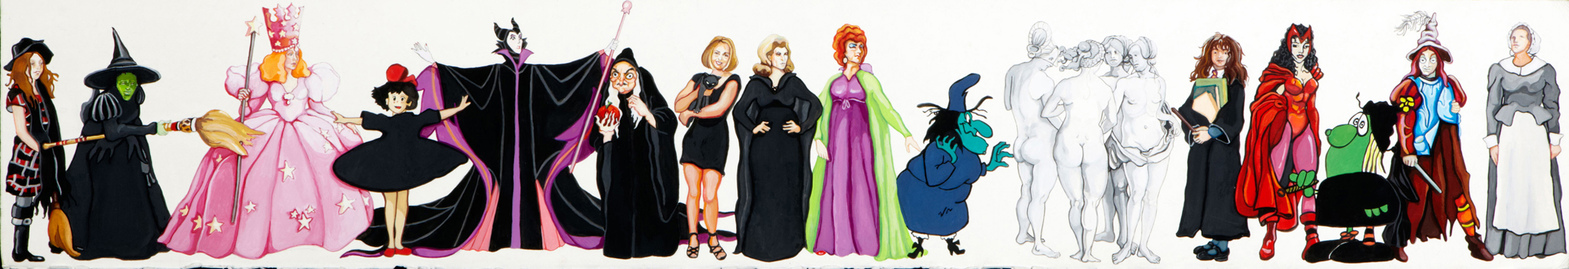 I AM A WITCH, PRINCESS, ANIMAL, FEMME FATALE.......... I am a Girl Witch: Gwendolyn, Wicked Witch of the West, Glinda, Kiki, Maleficent, Queen Grimhilde, Sabrina, Samantha, Endora, Witch Hazel, The Four Witches (Albrecht Durer), Hermione, Scarlet Witch, Broom Hilda, Witchiepoo, Elizabeth Proctor